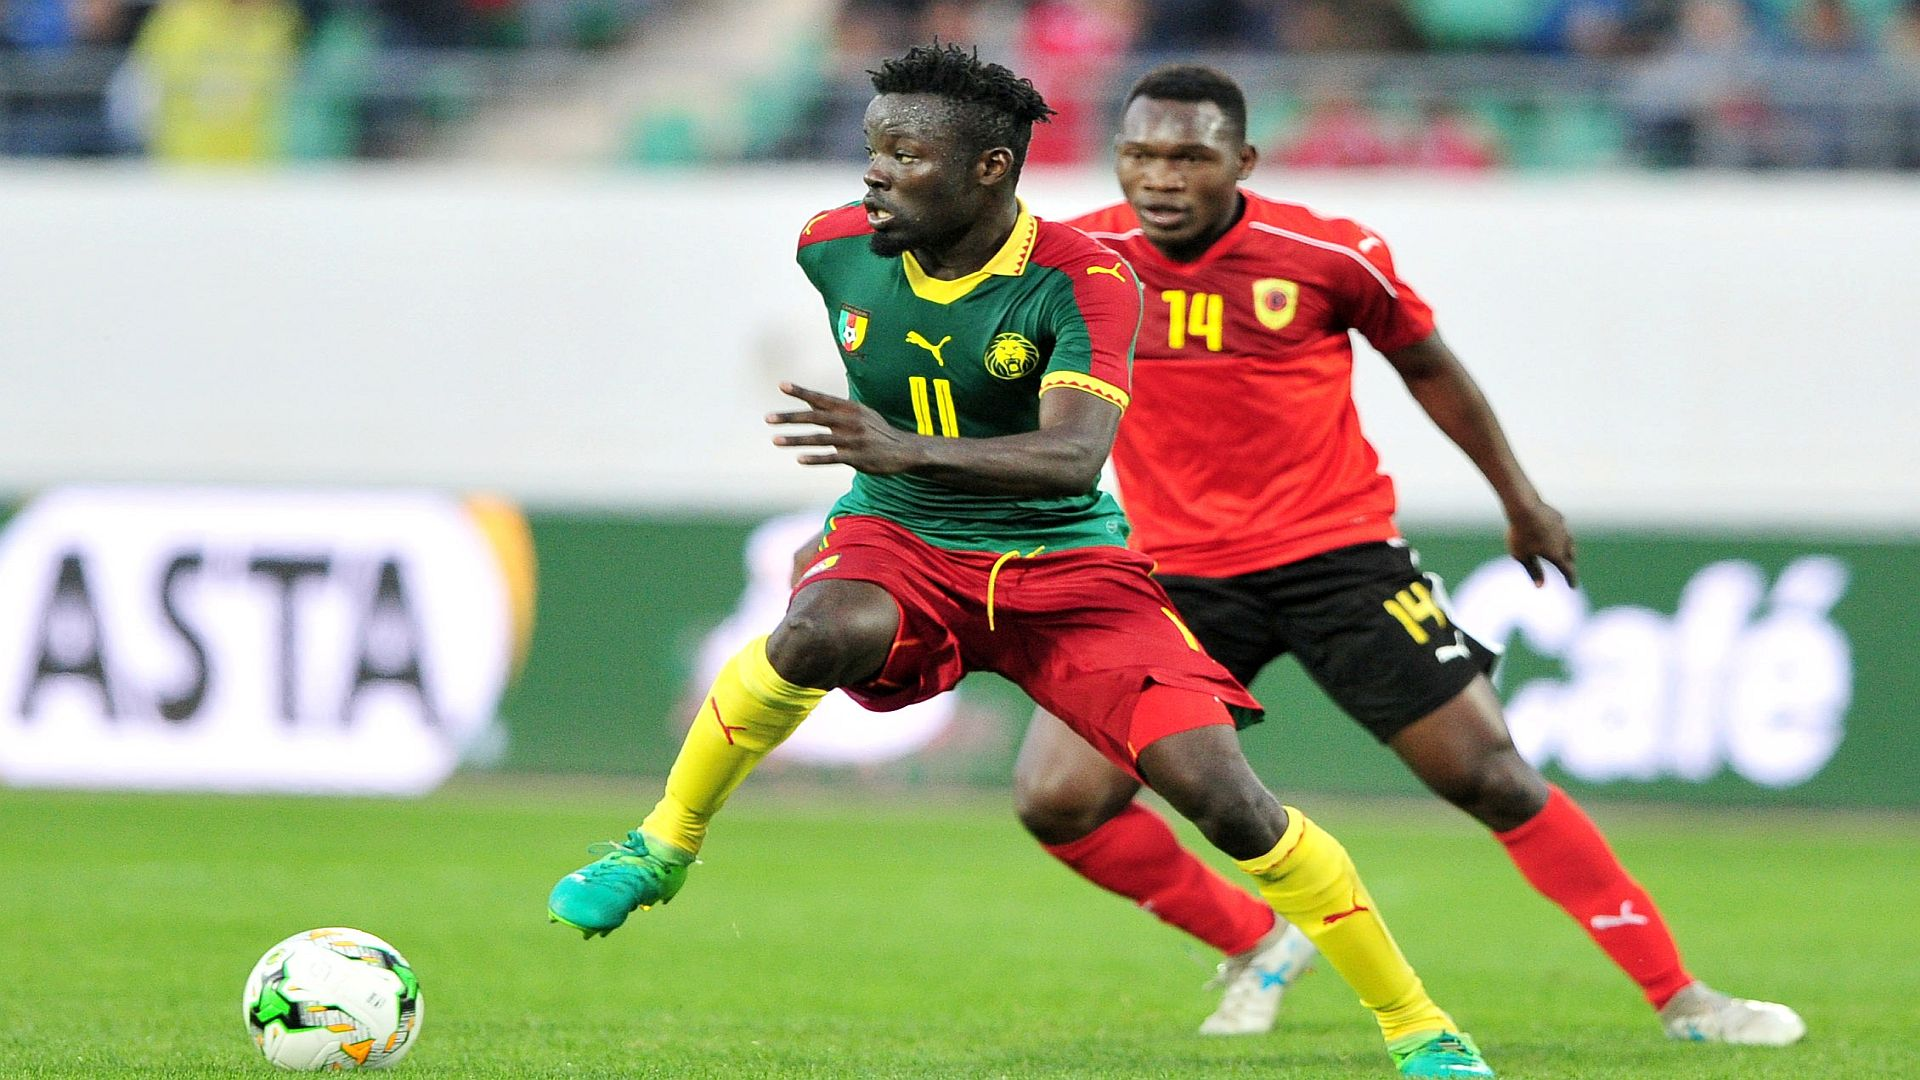 Angola edge Cameroon in the African Nations Championship